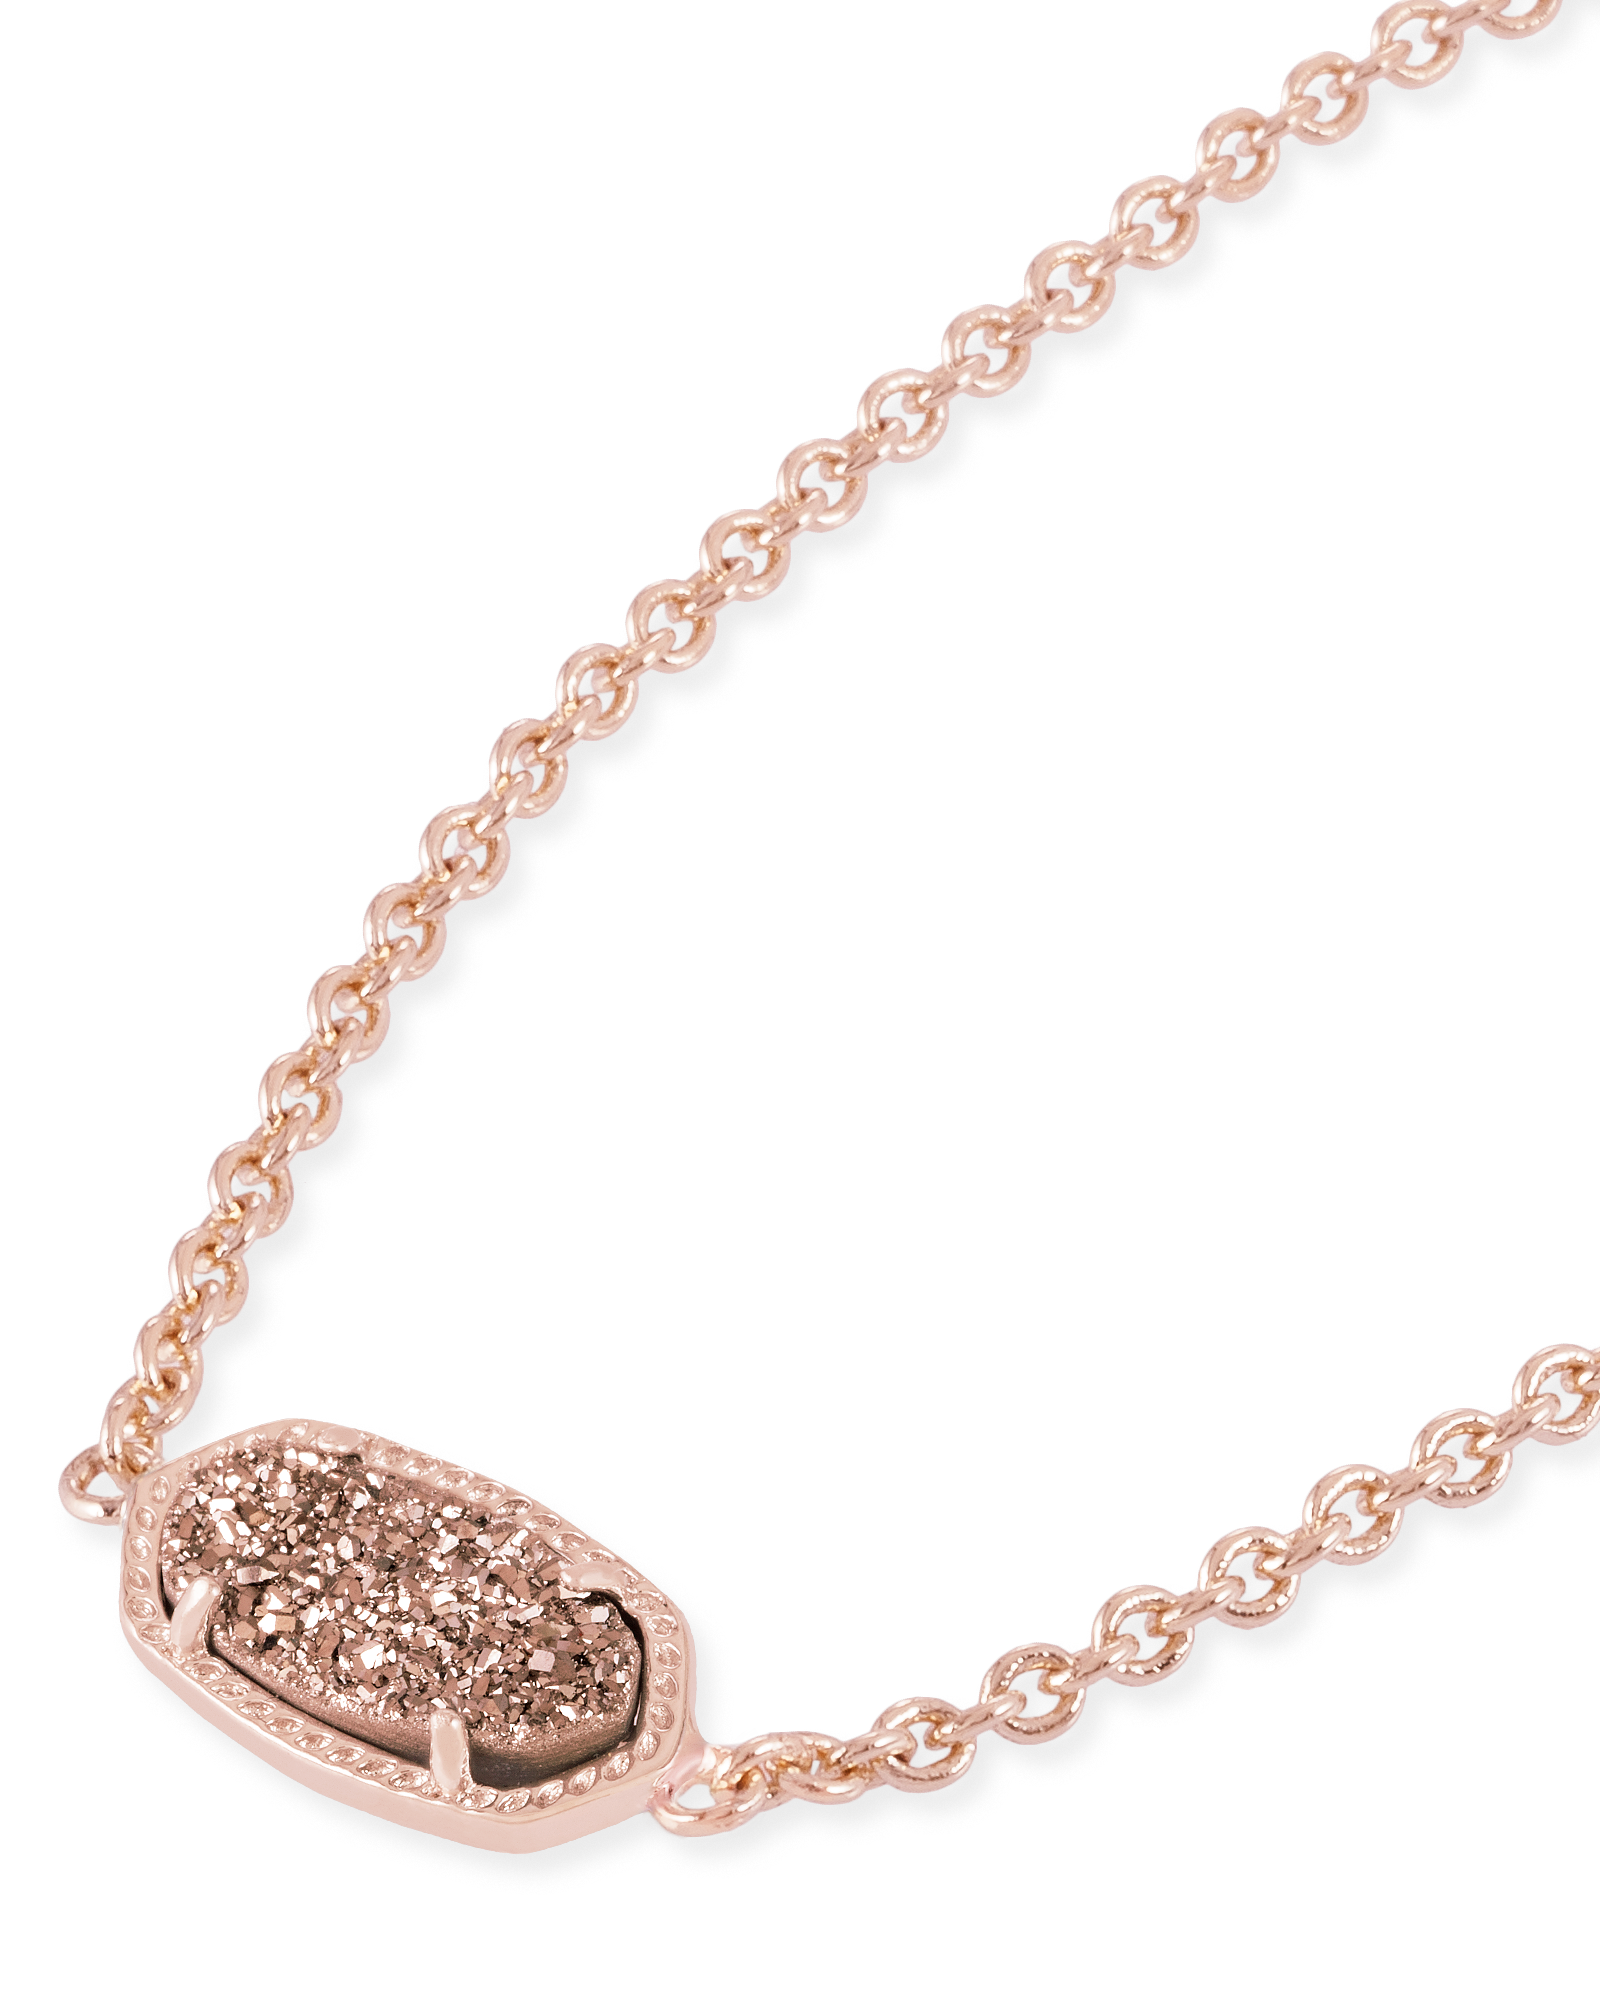 Elaina Adjustable Chain Bracelet in Rose Gold Drusy